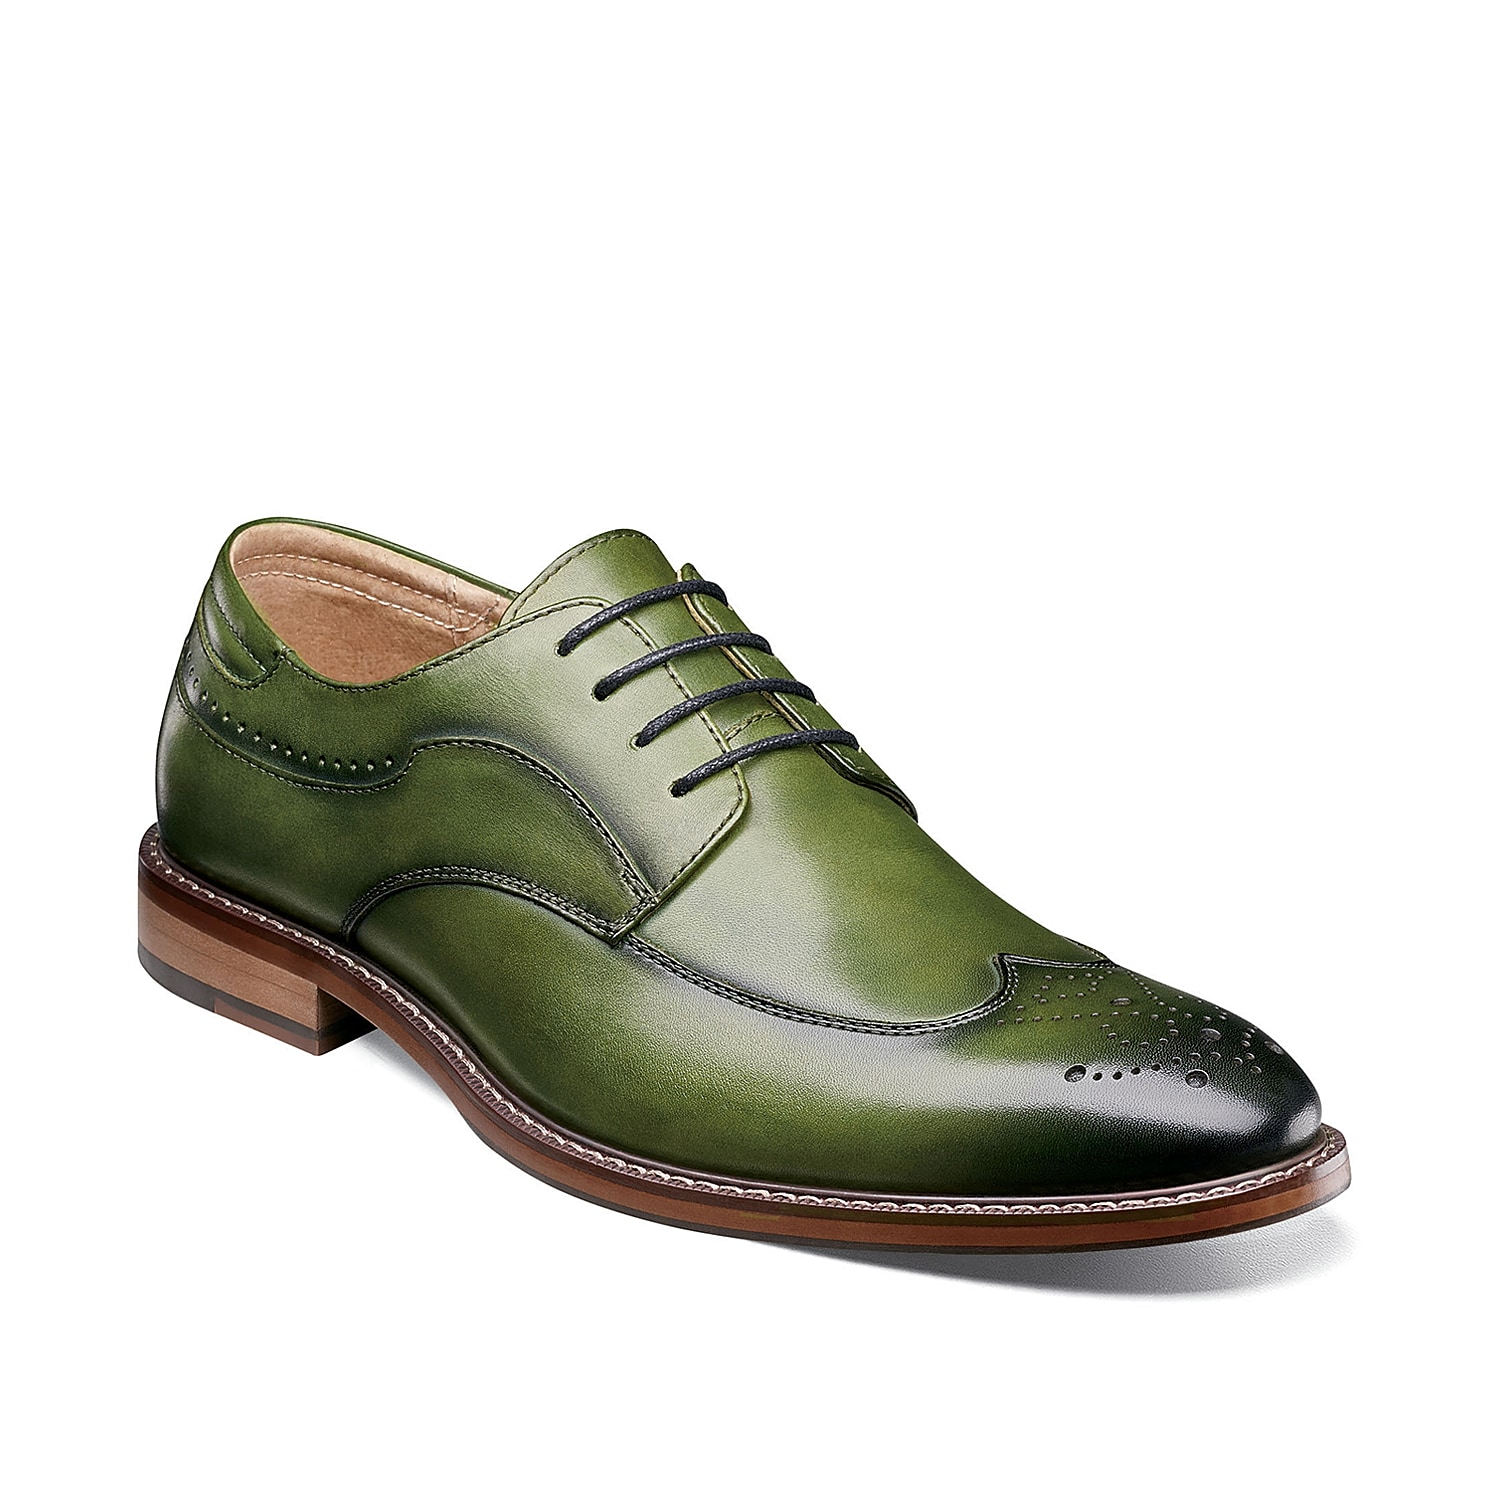 Make your tailored looks pop with the Fletcher wingtip oxford from Stacy Adams. Smooth leather with a semi-gloss finish provides the perfect amount of shine.